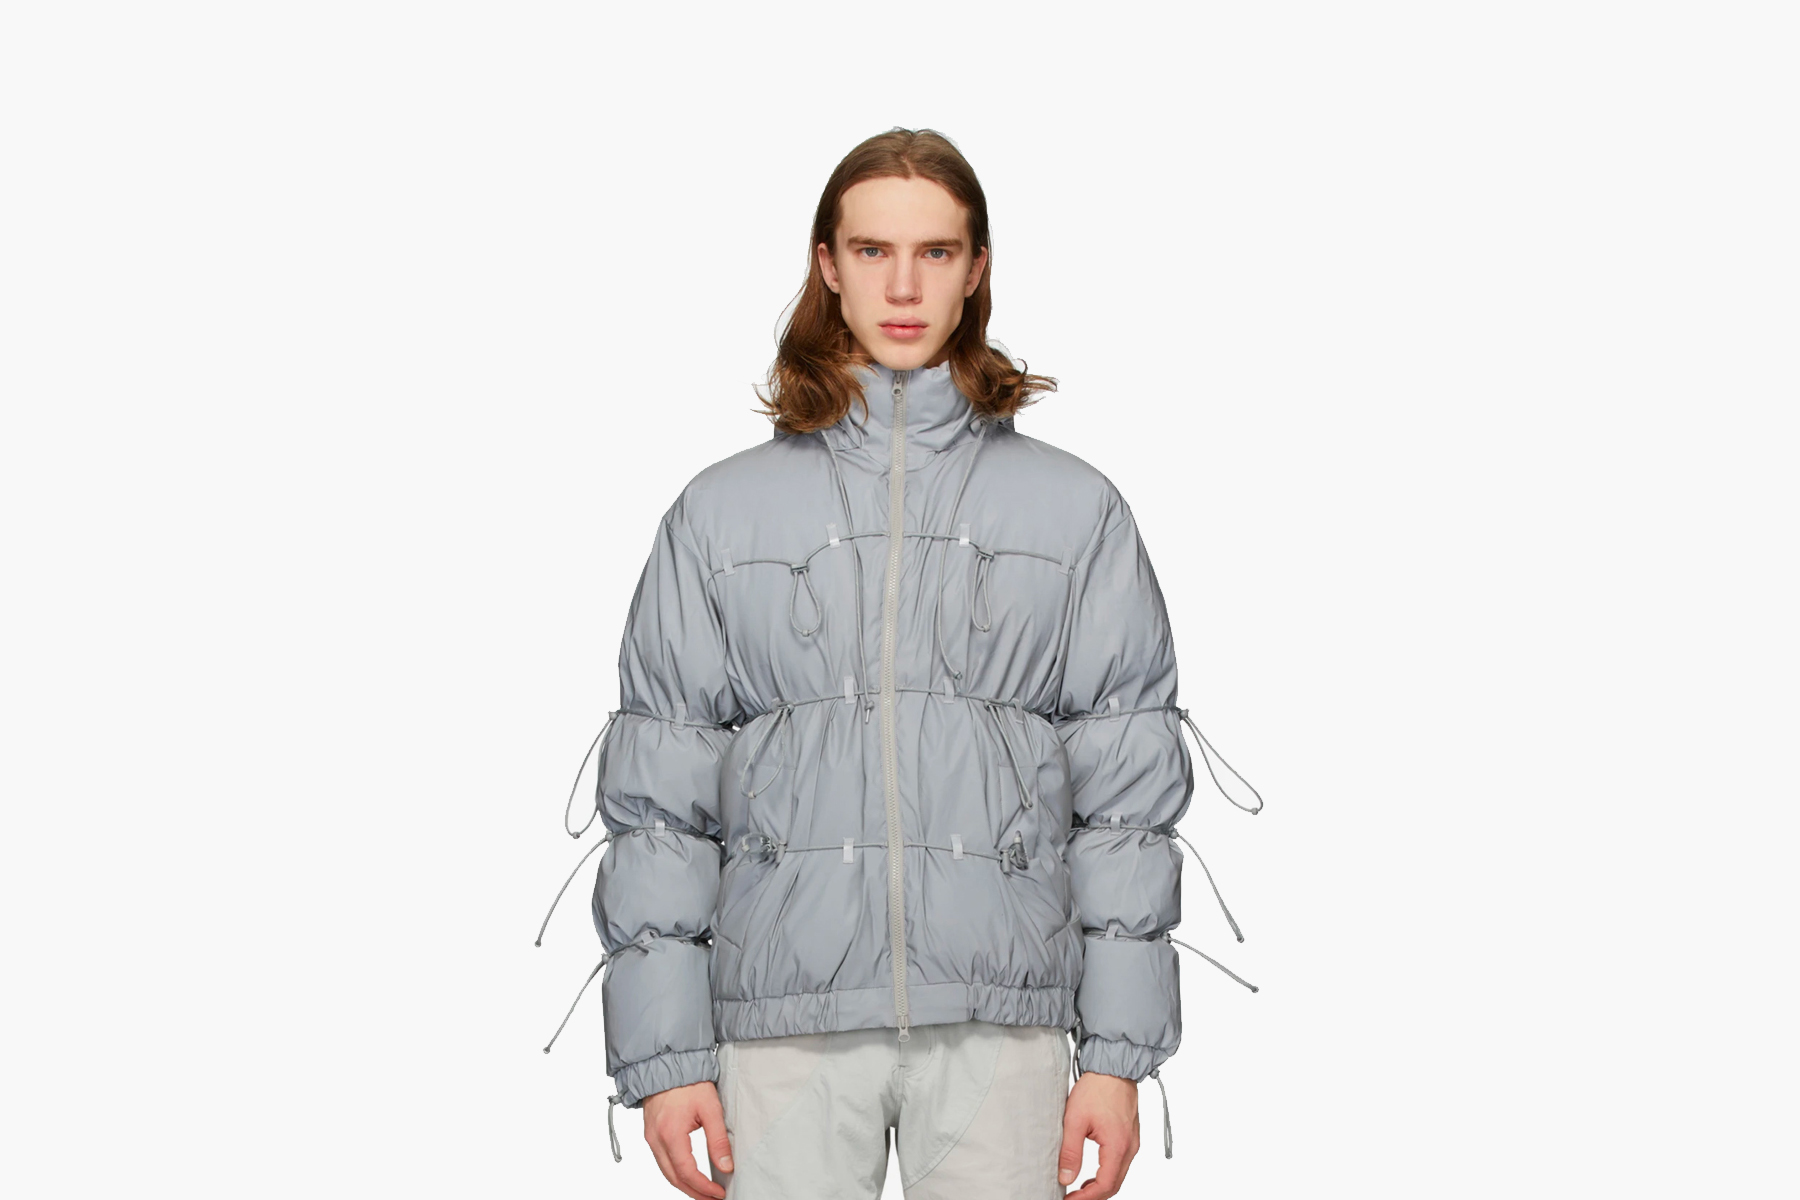 SSENSE Exclusive POST ARCHIVE FACTION Down Reflective String Jacket